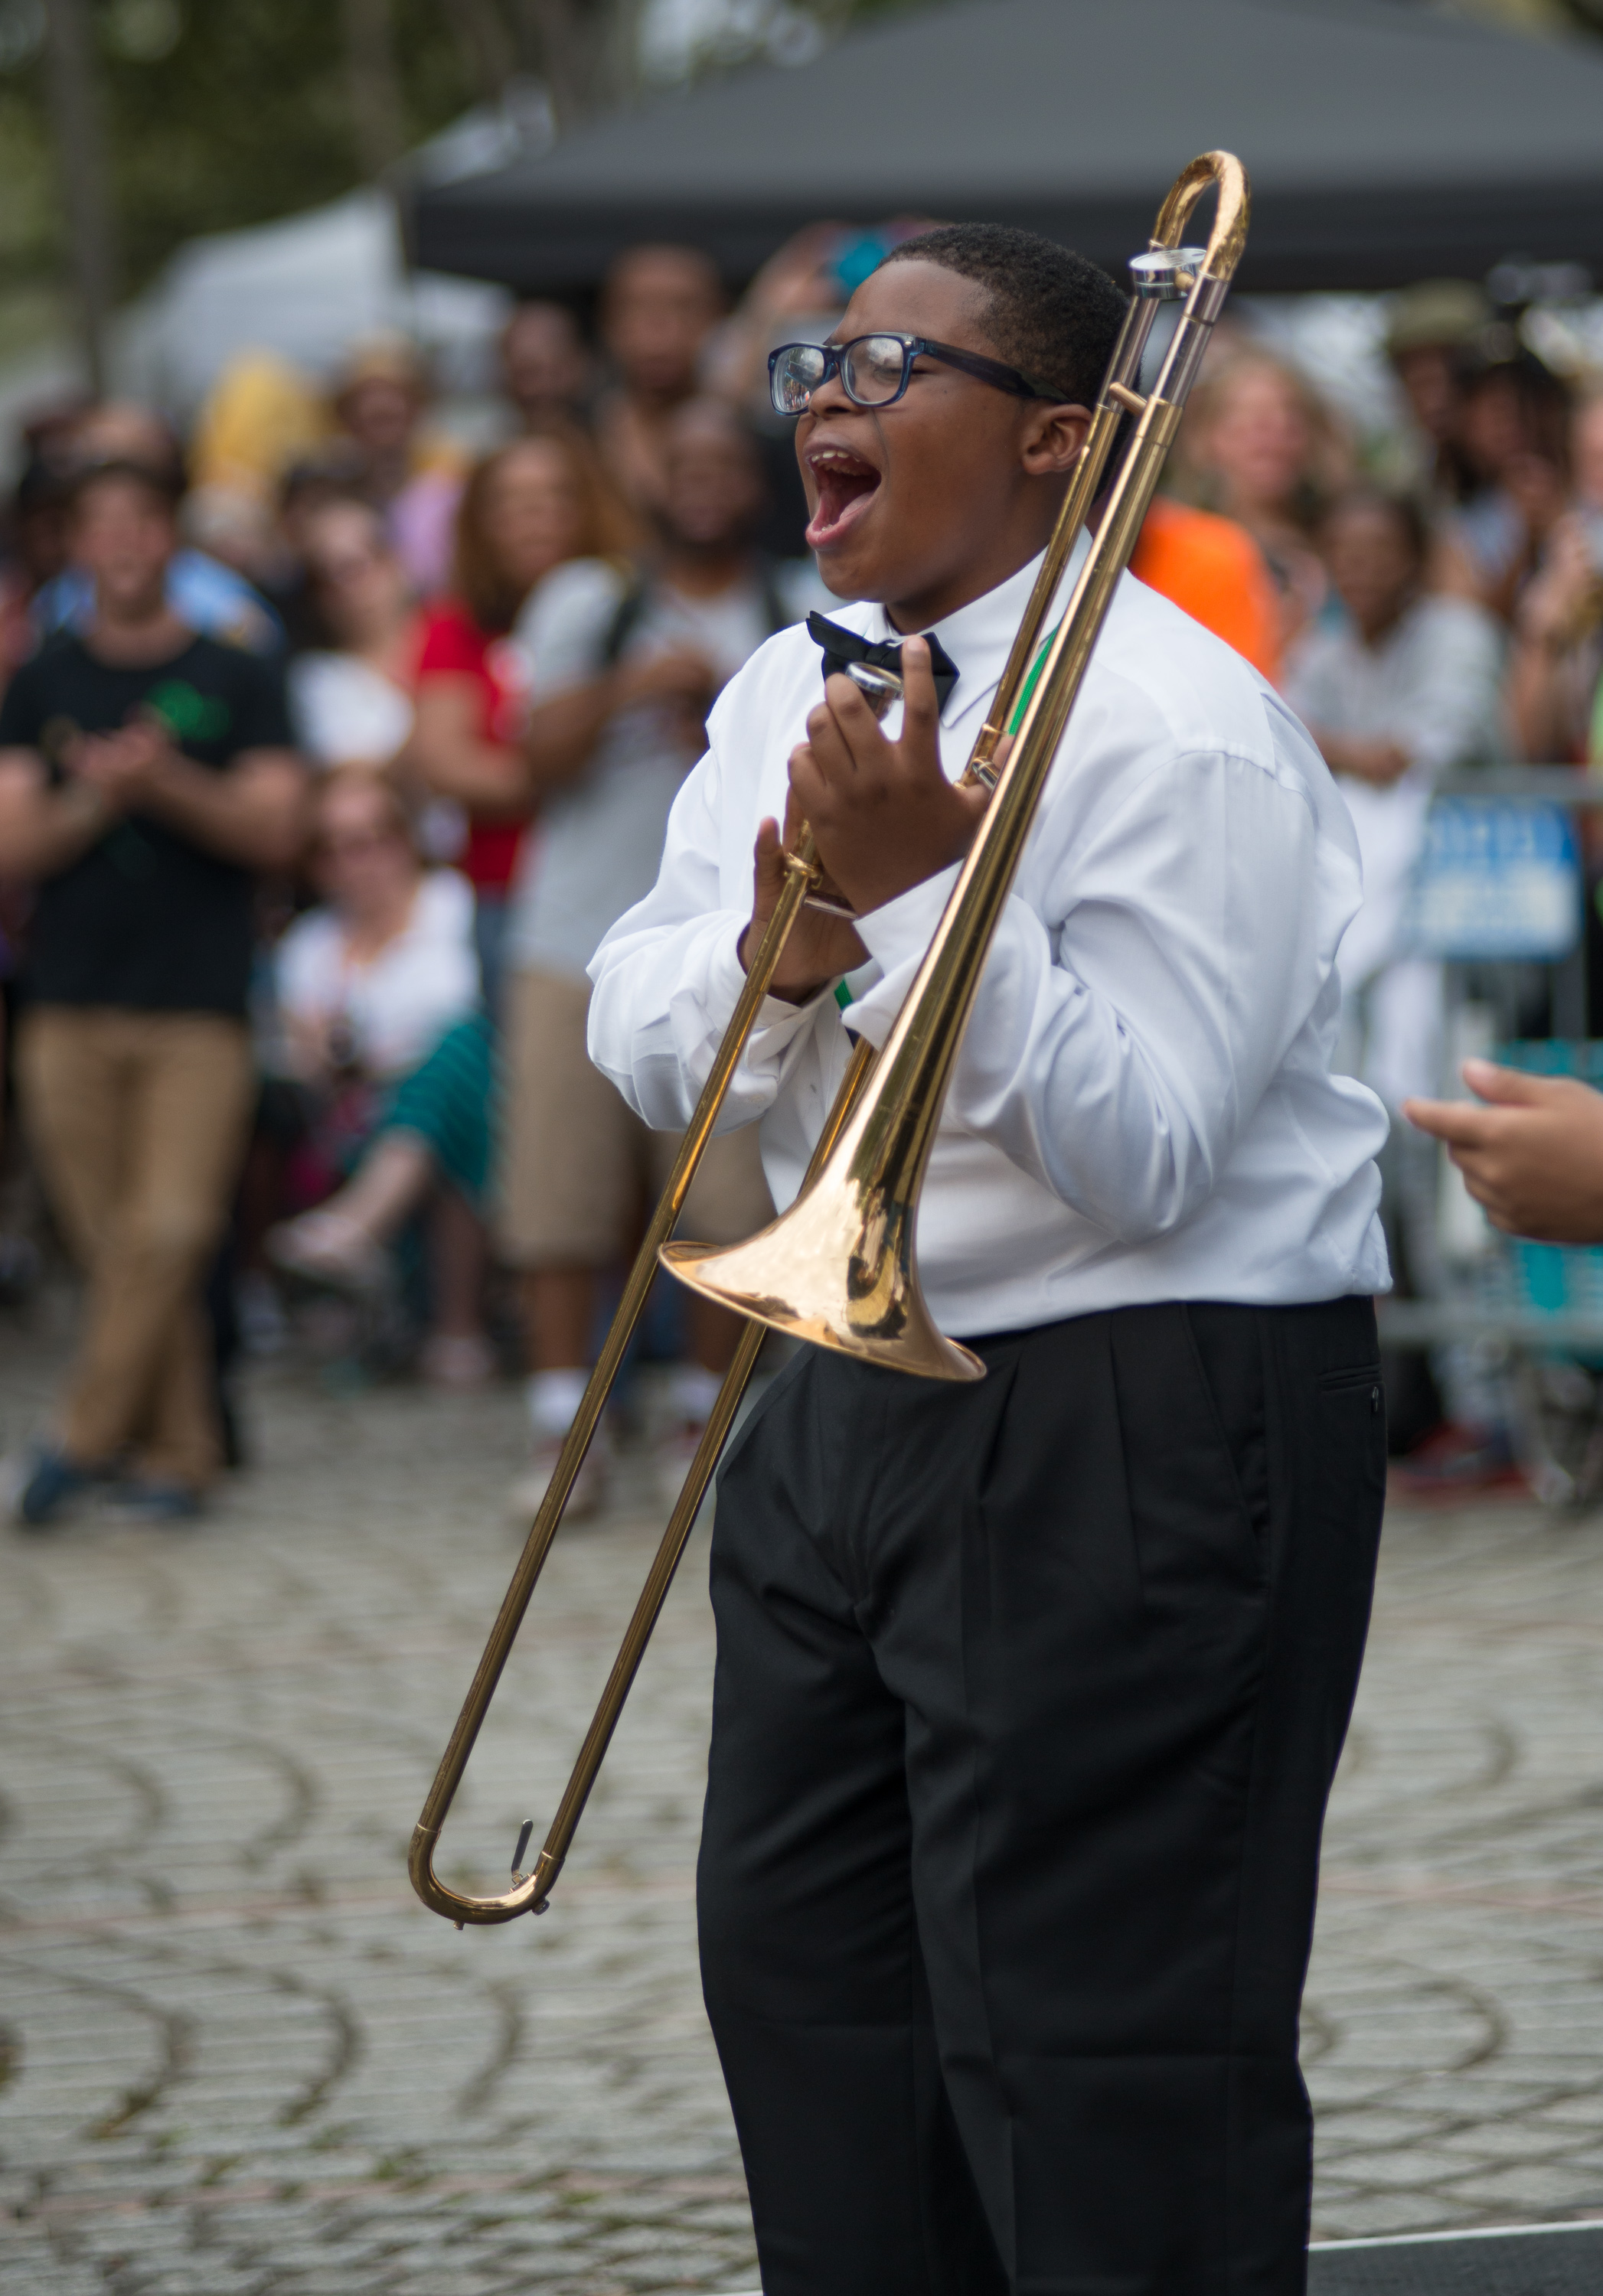 2015 Congo Square Rhythms Festival, New Orleans, music, Medard H Nelson Charter School